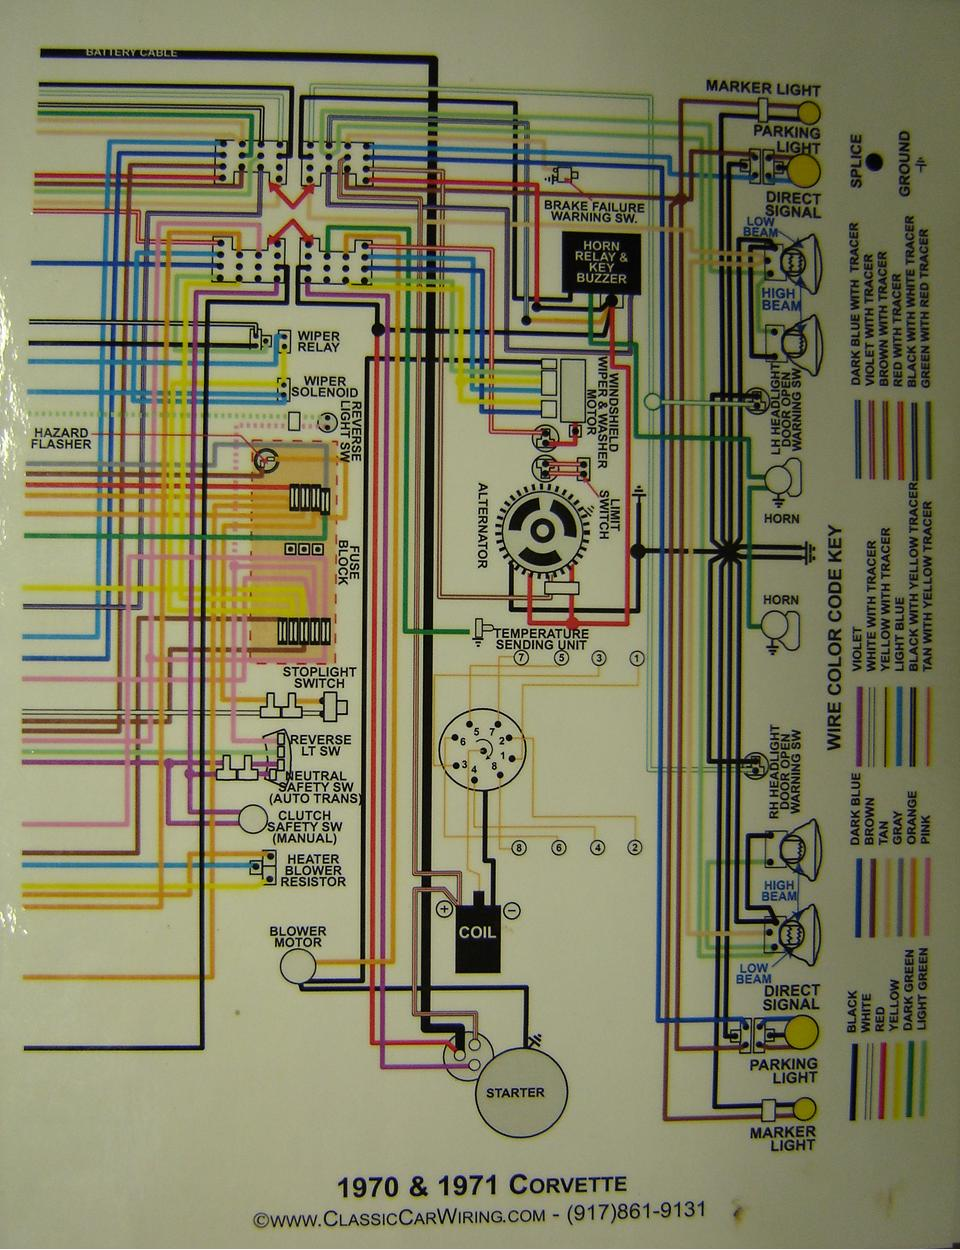 1970 71 corvette color wiring diagram B 1970 chevelle wiring diagram efcaviation com 71 chevelle wiring diagram at nearapp.co